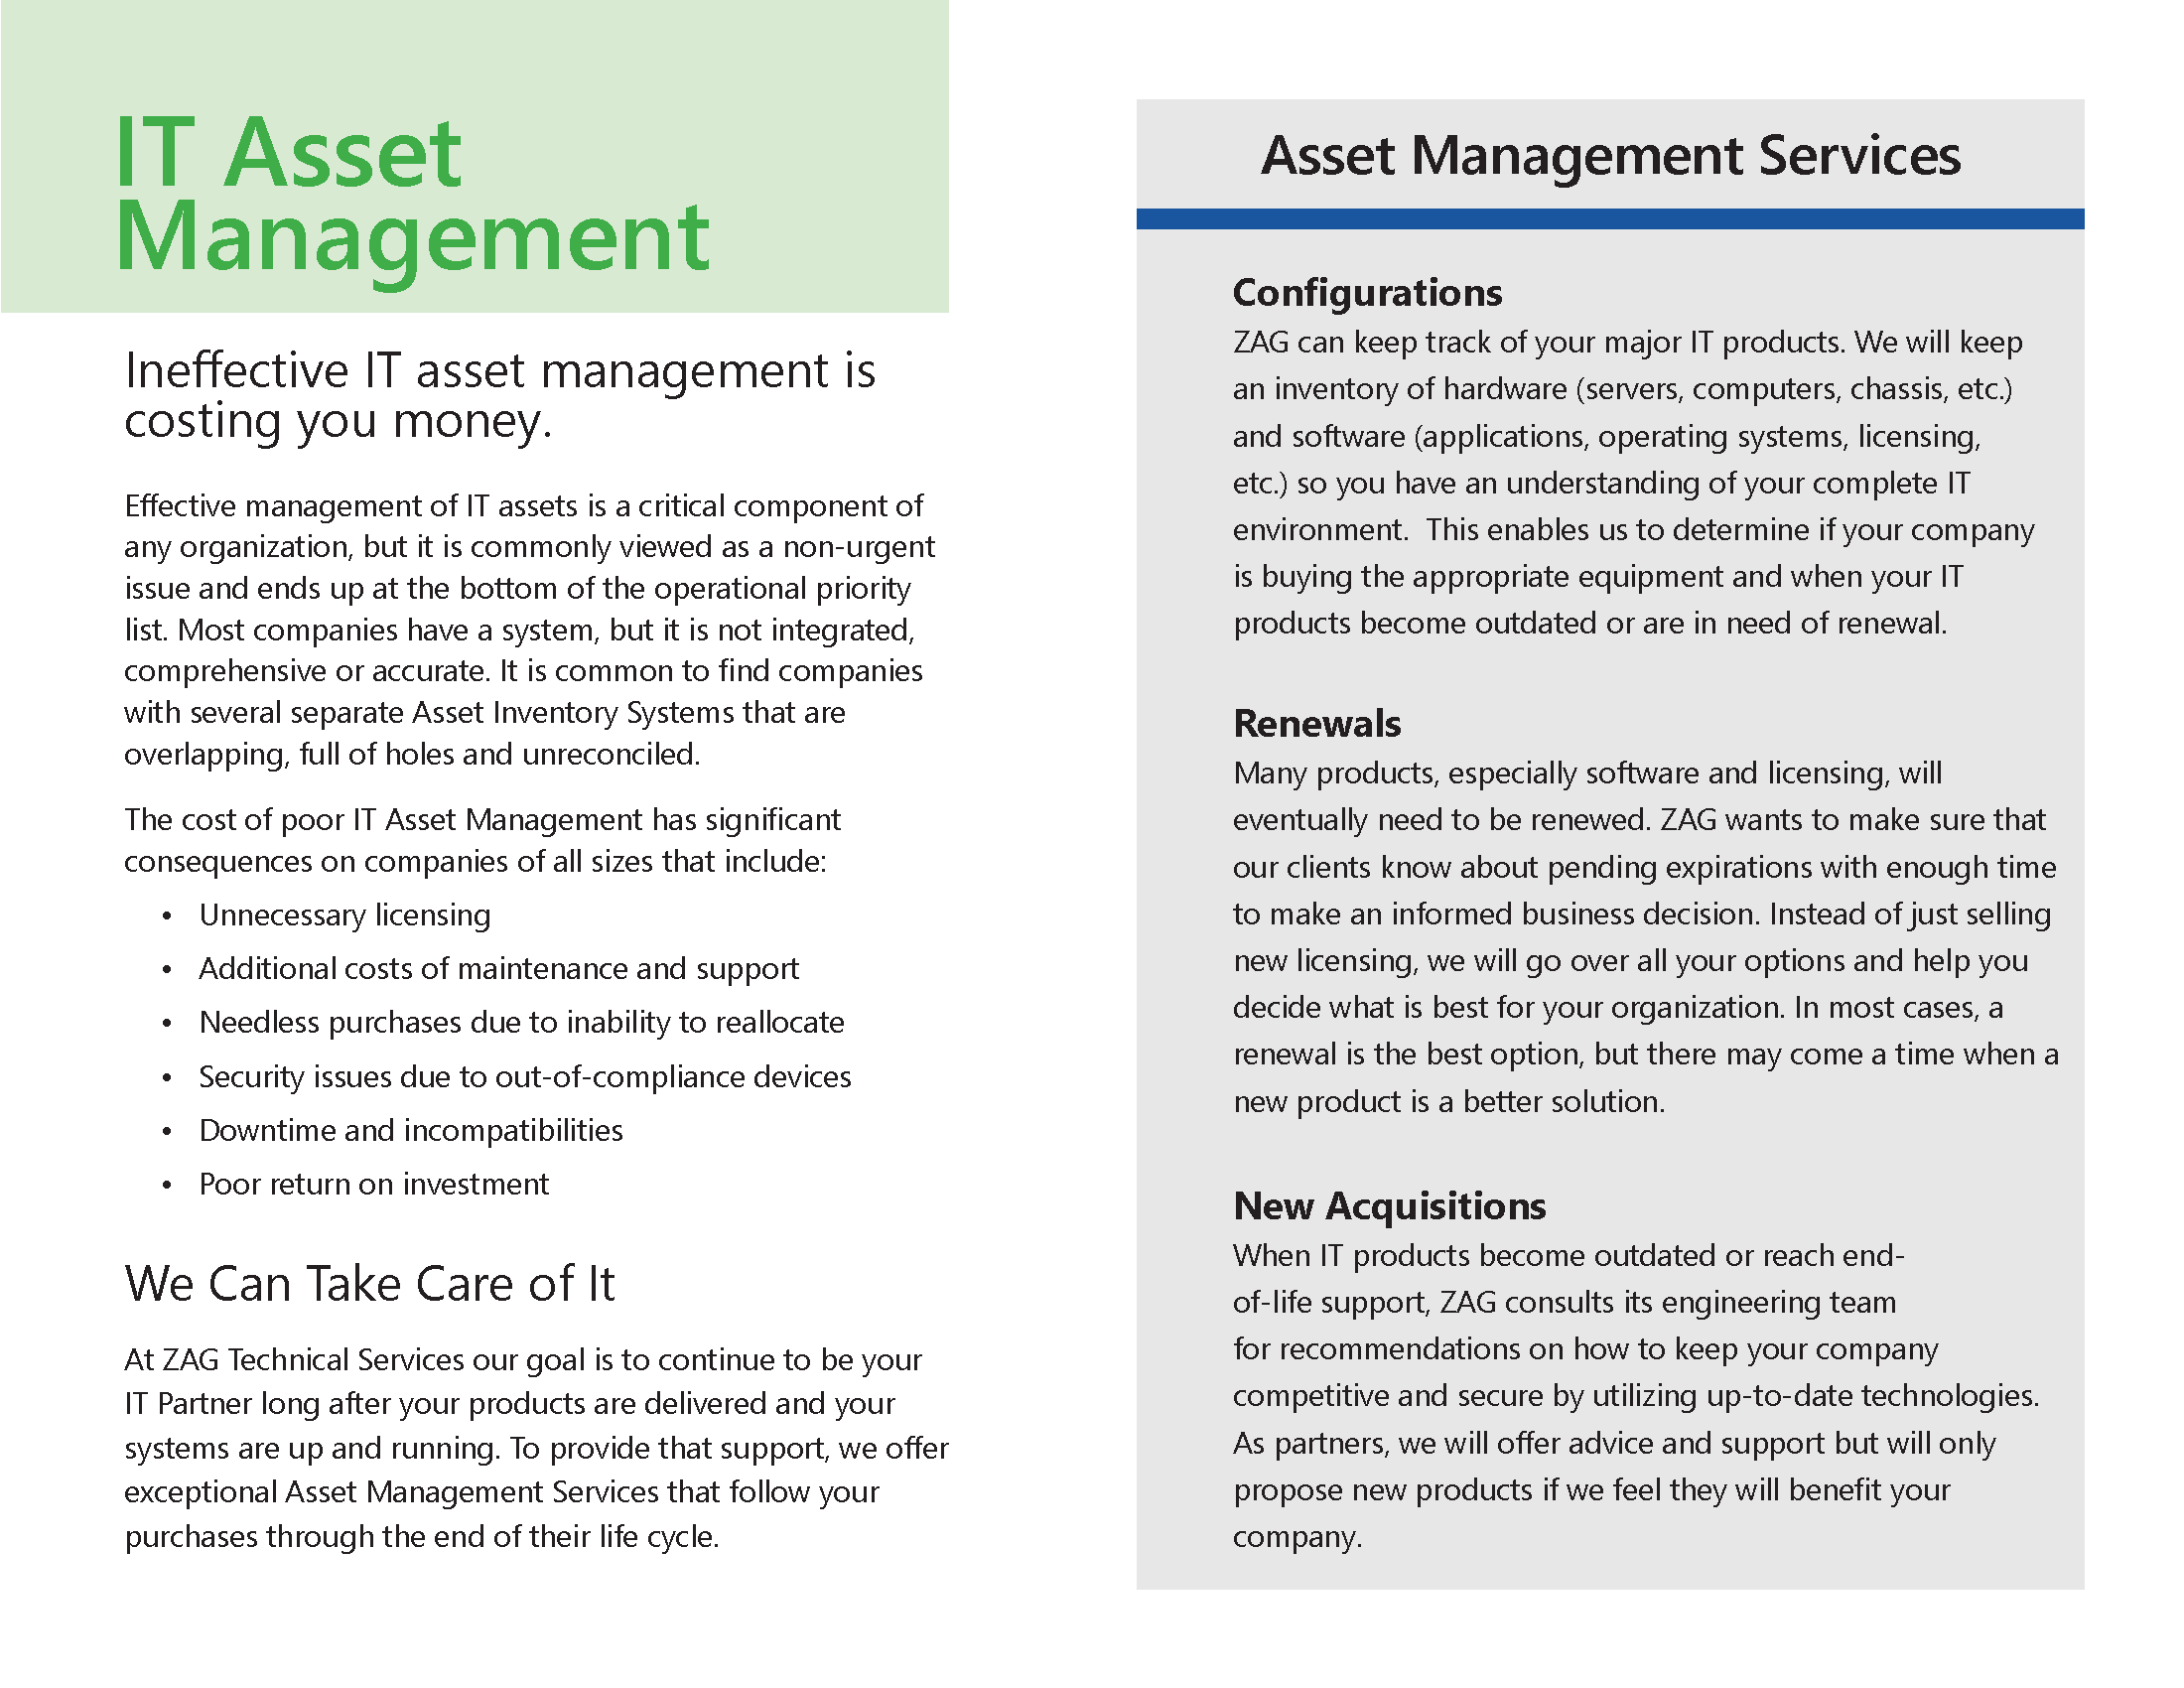 ZAG Asset Management Services